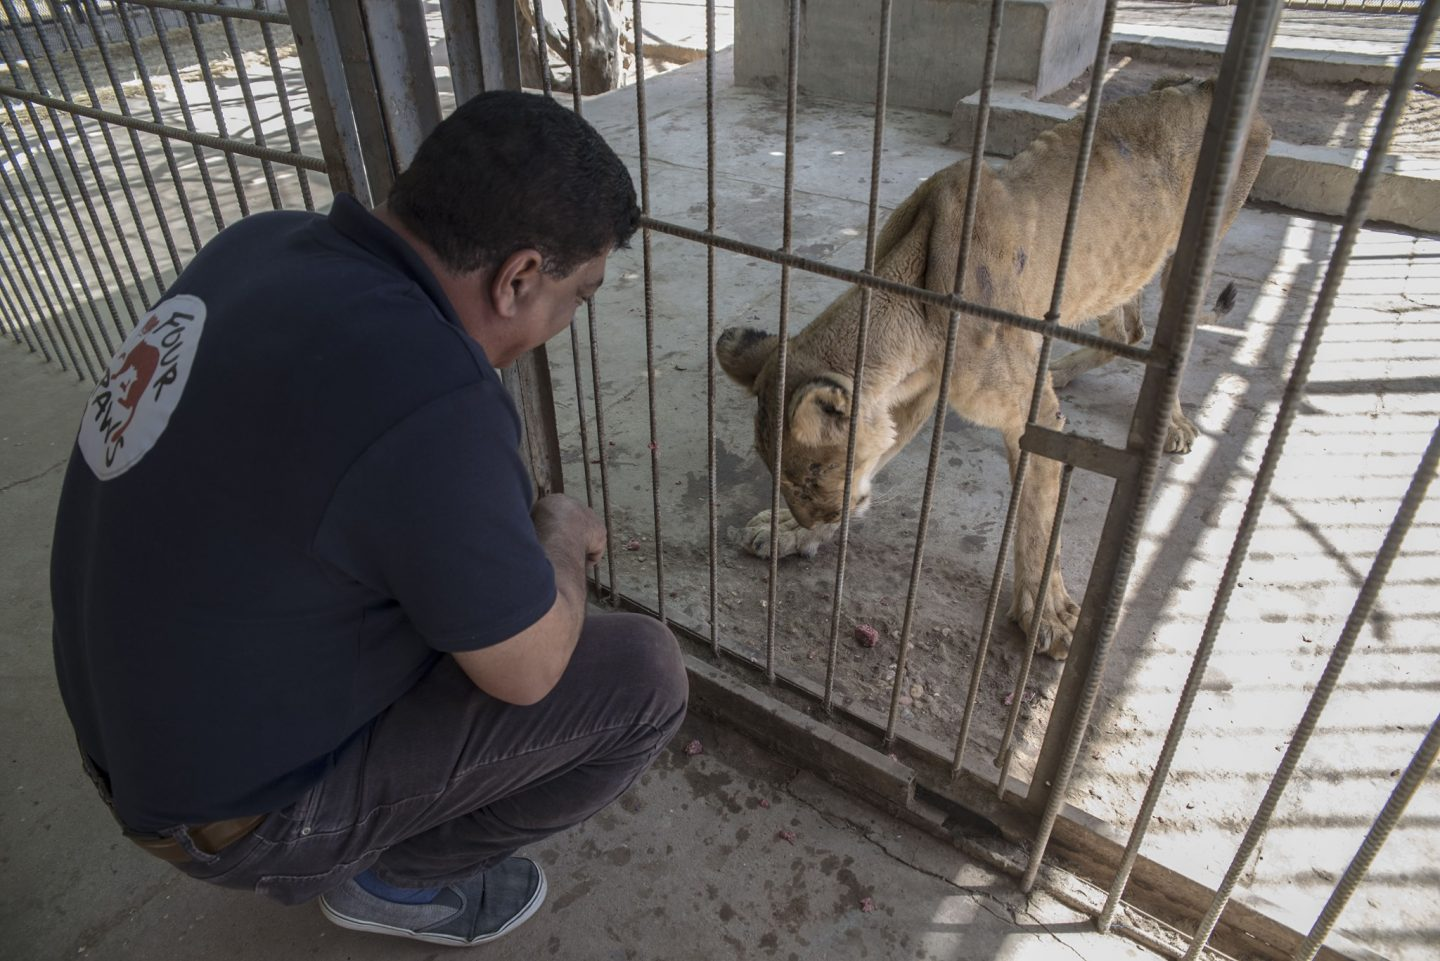 Updates on the Sudan Lions and how you can help #SaveSudanLions